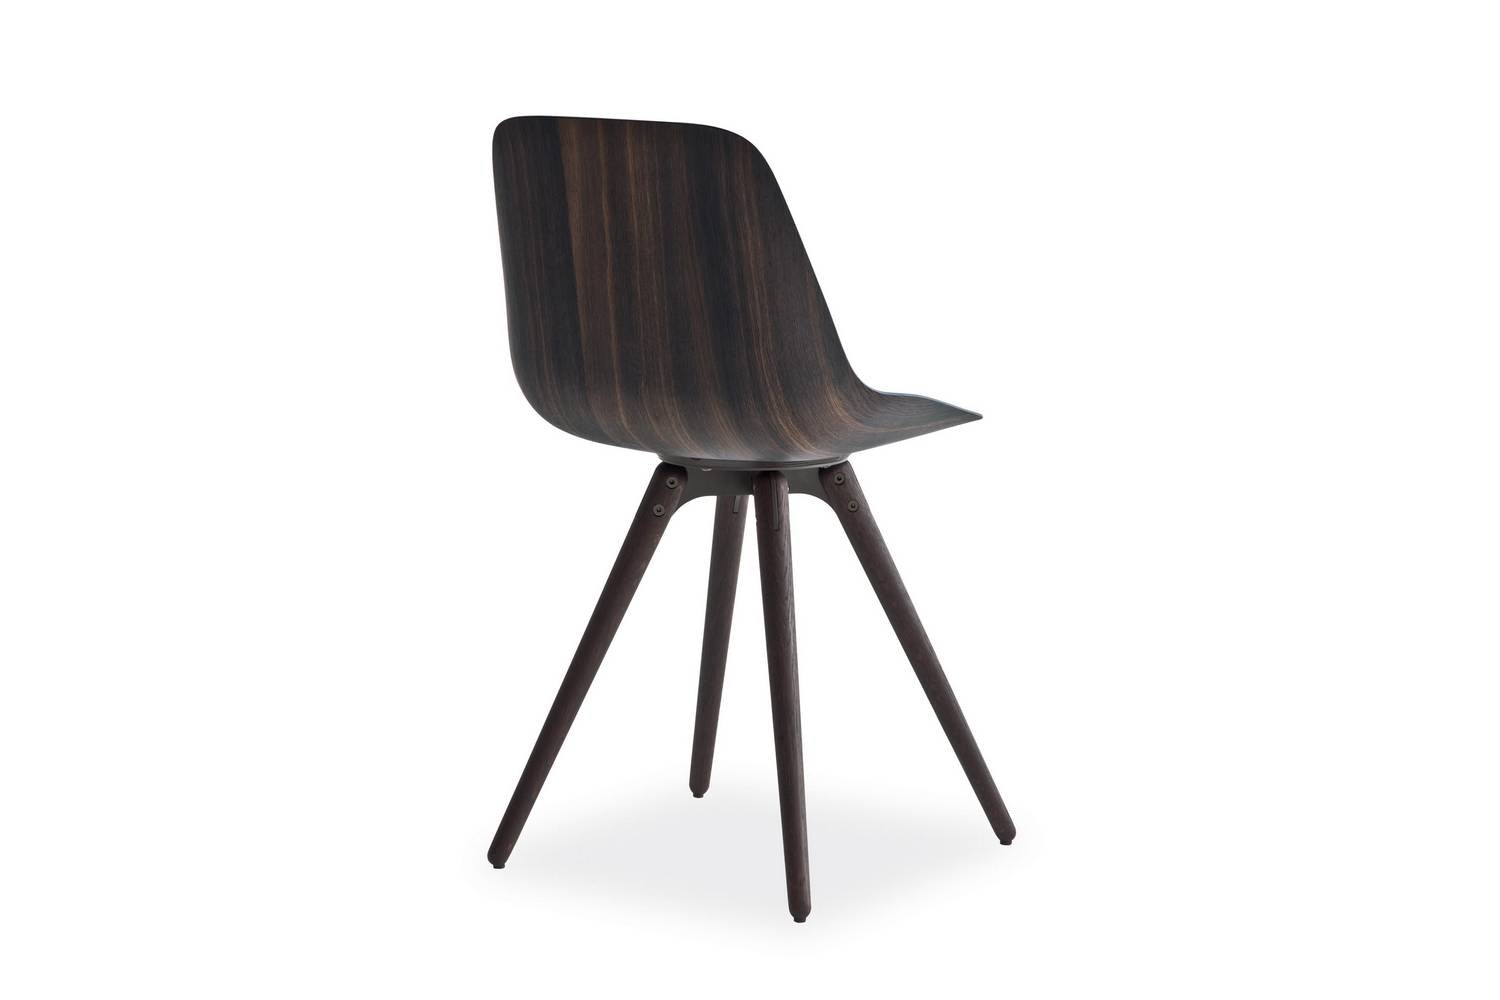 Harmony Chair with Legs in Wood by Rodrigo Torres for Poliform